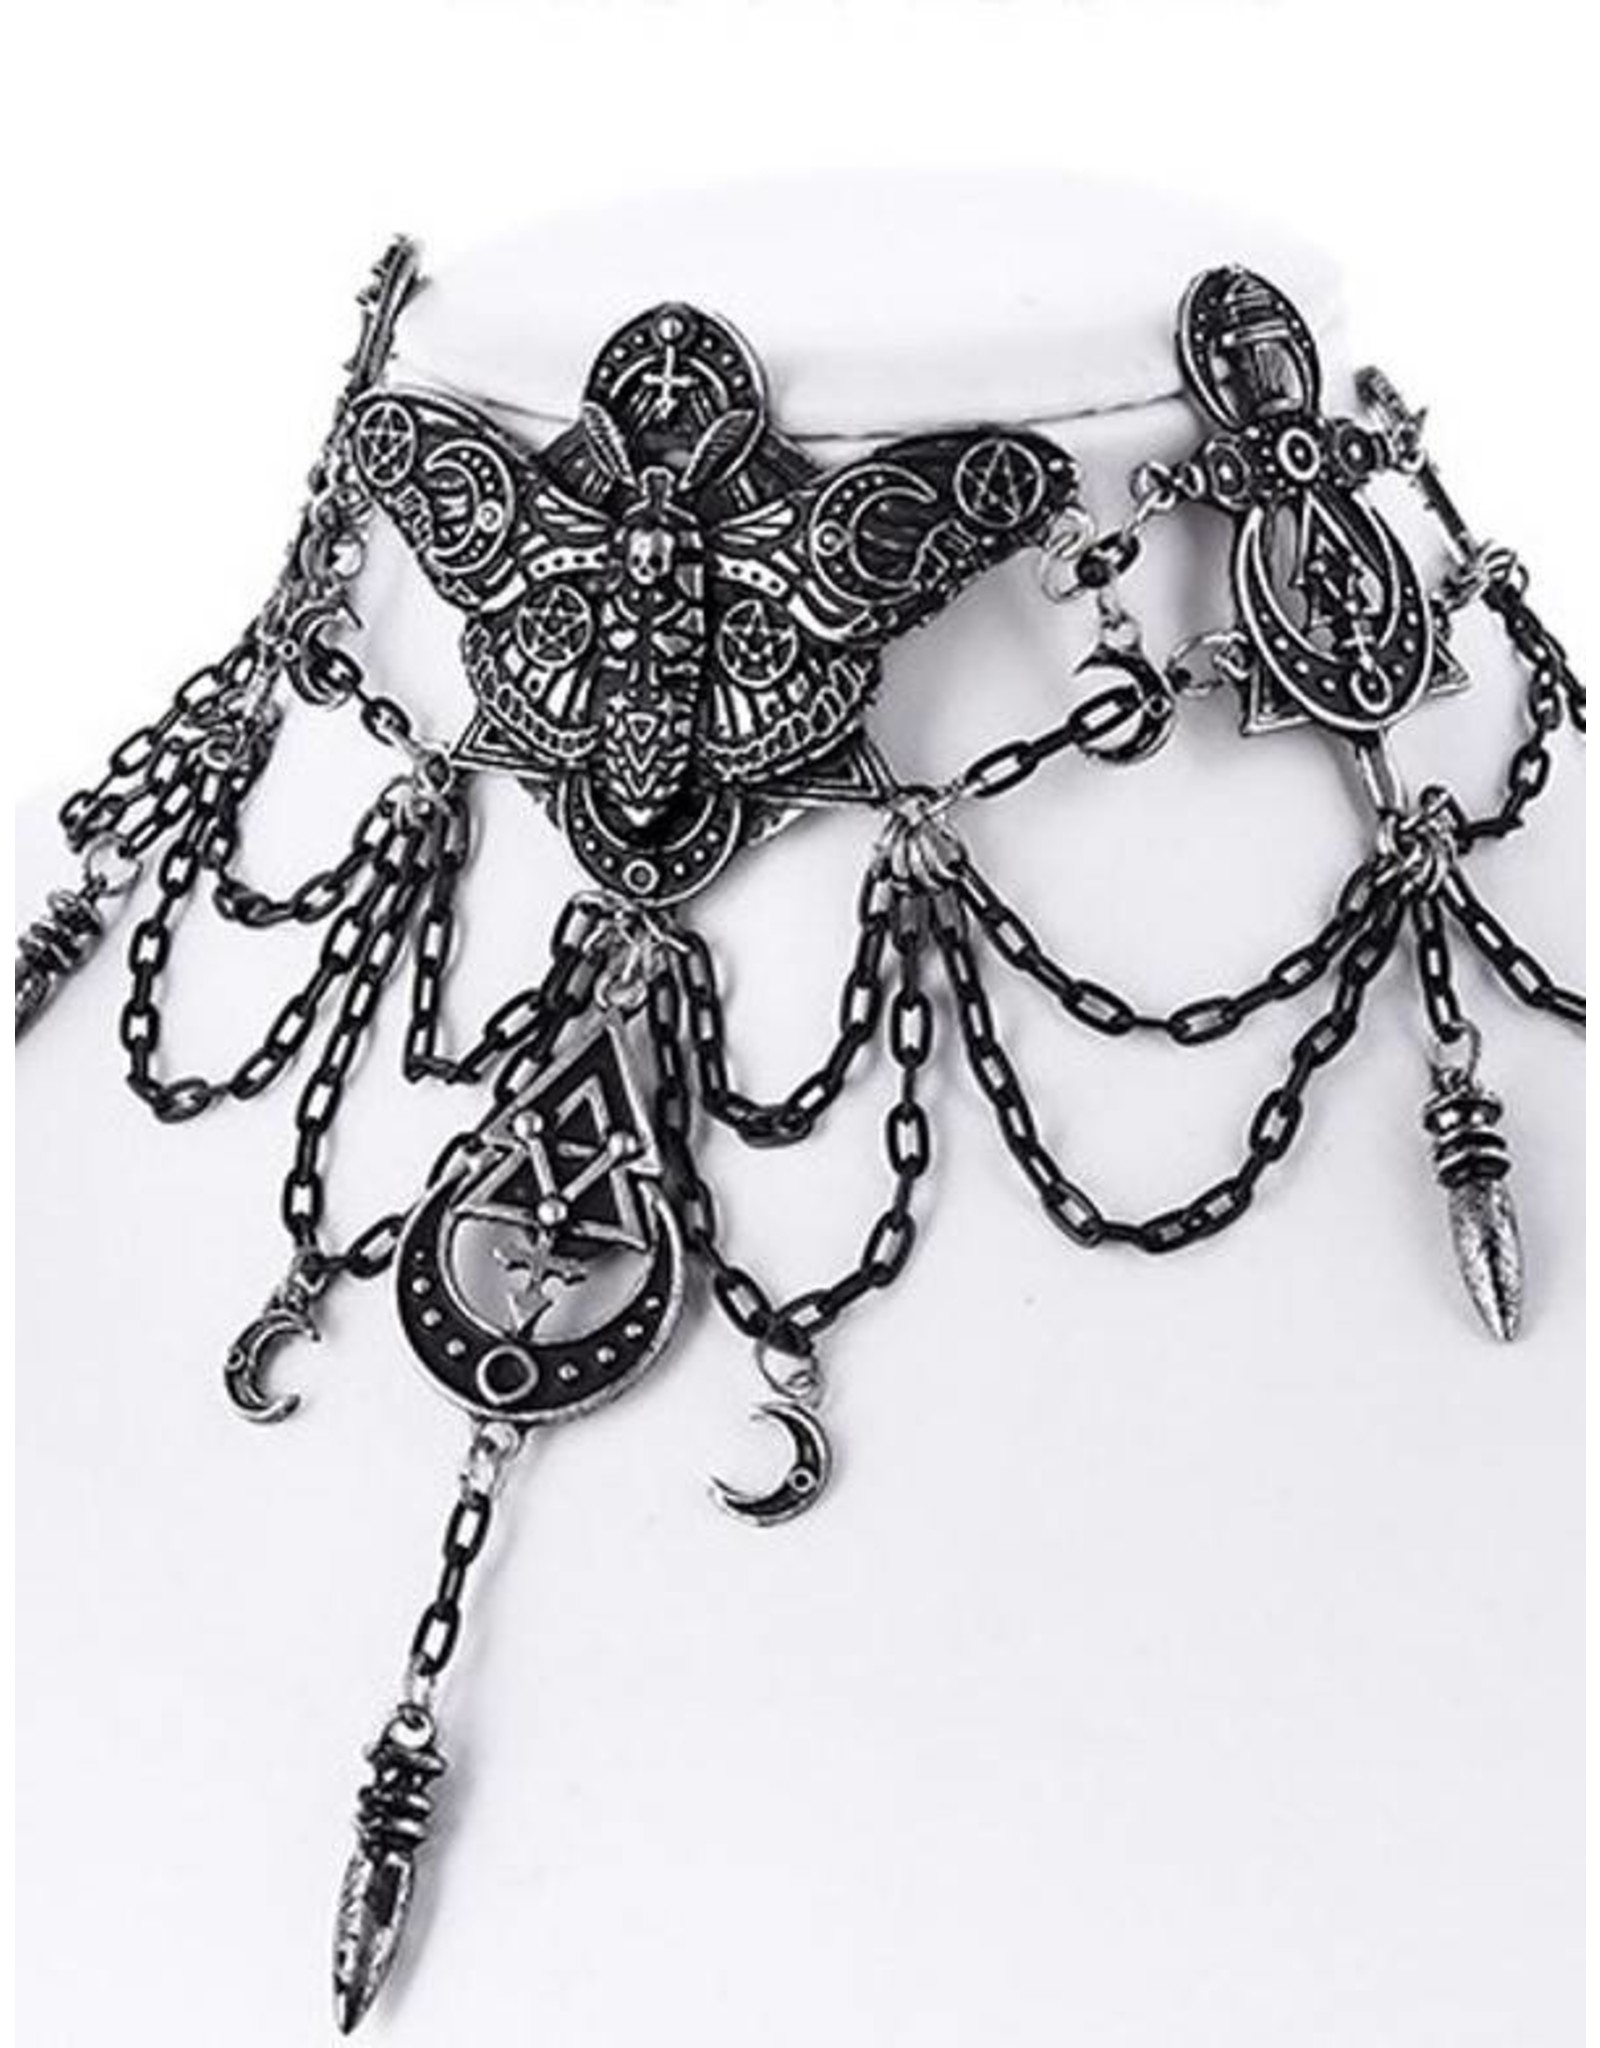 Restyle Occult en Gothic accessoires - Occult Moth Choker Restyle